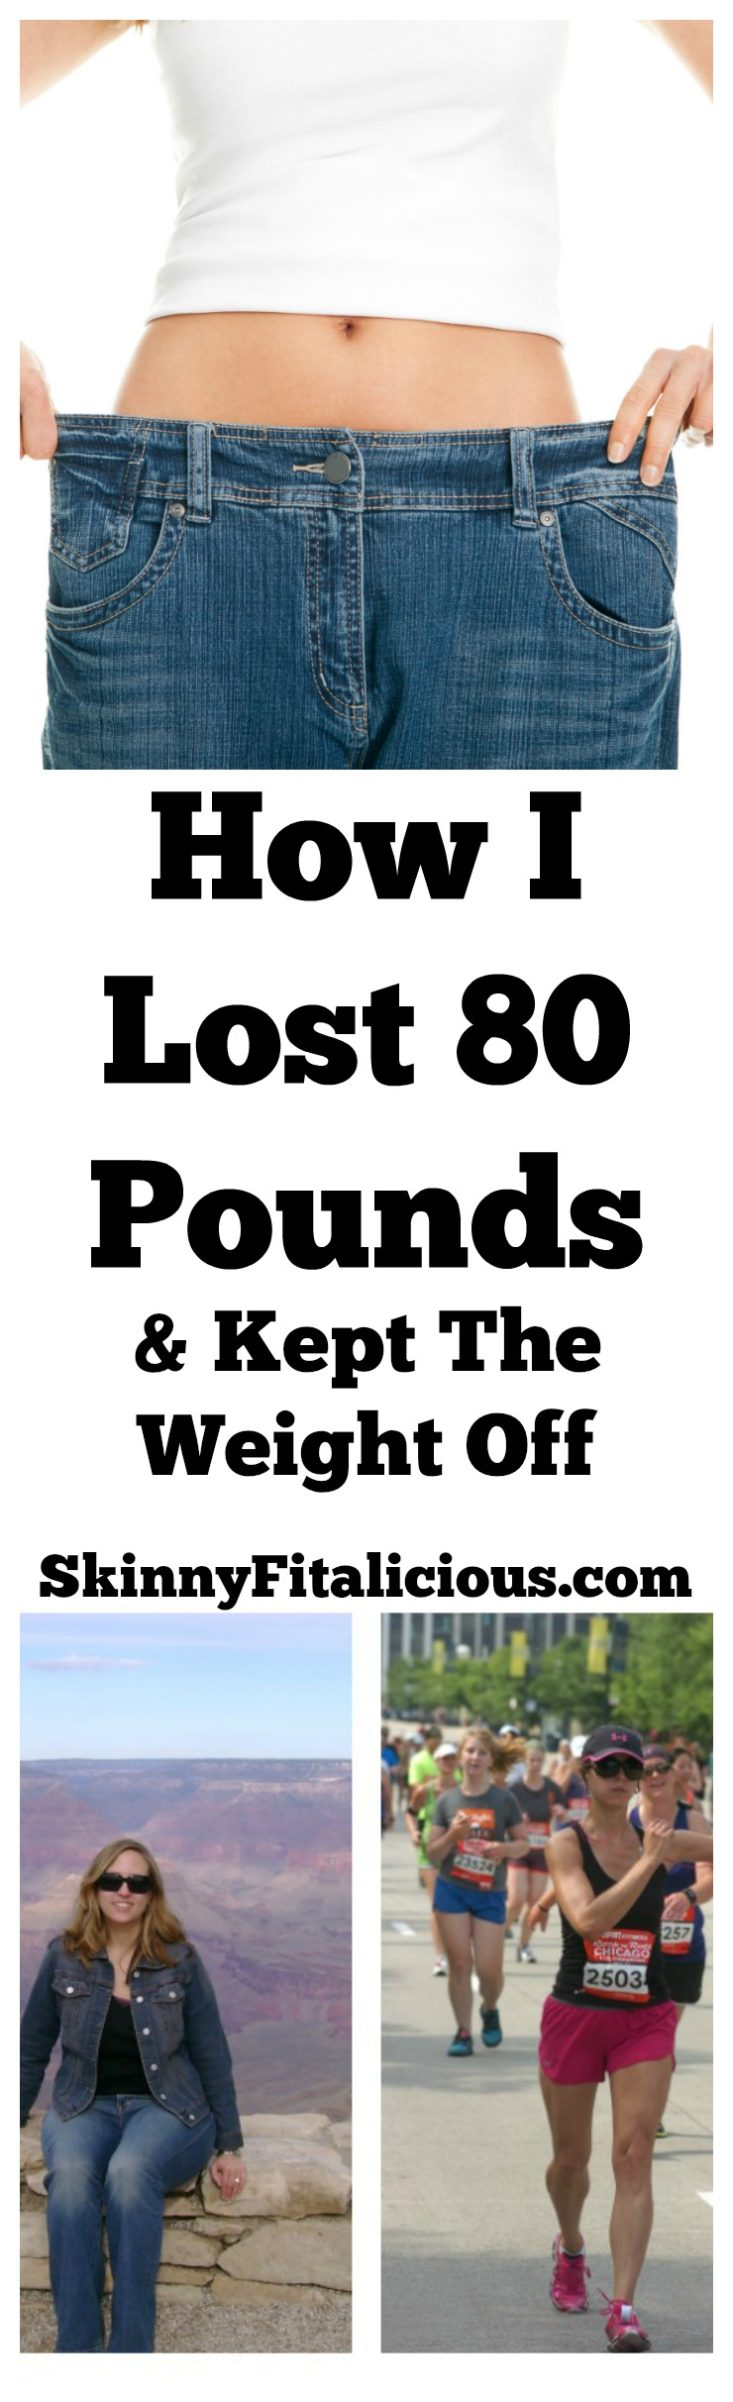 How I Lost 80 Pounds In A Year - Skinny Fitalicious